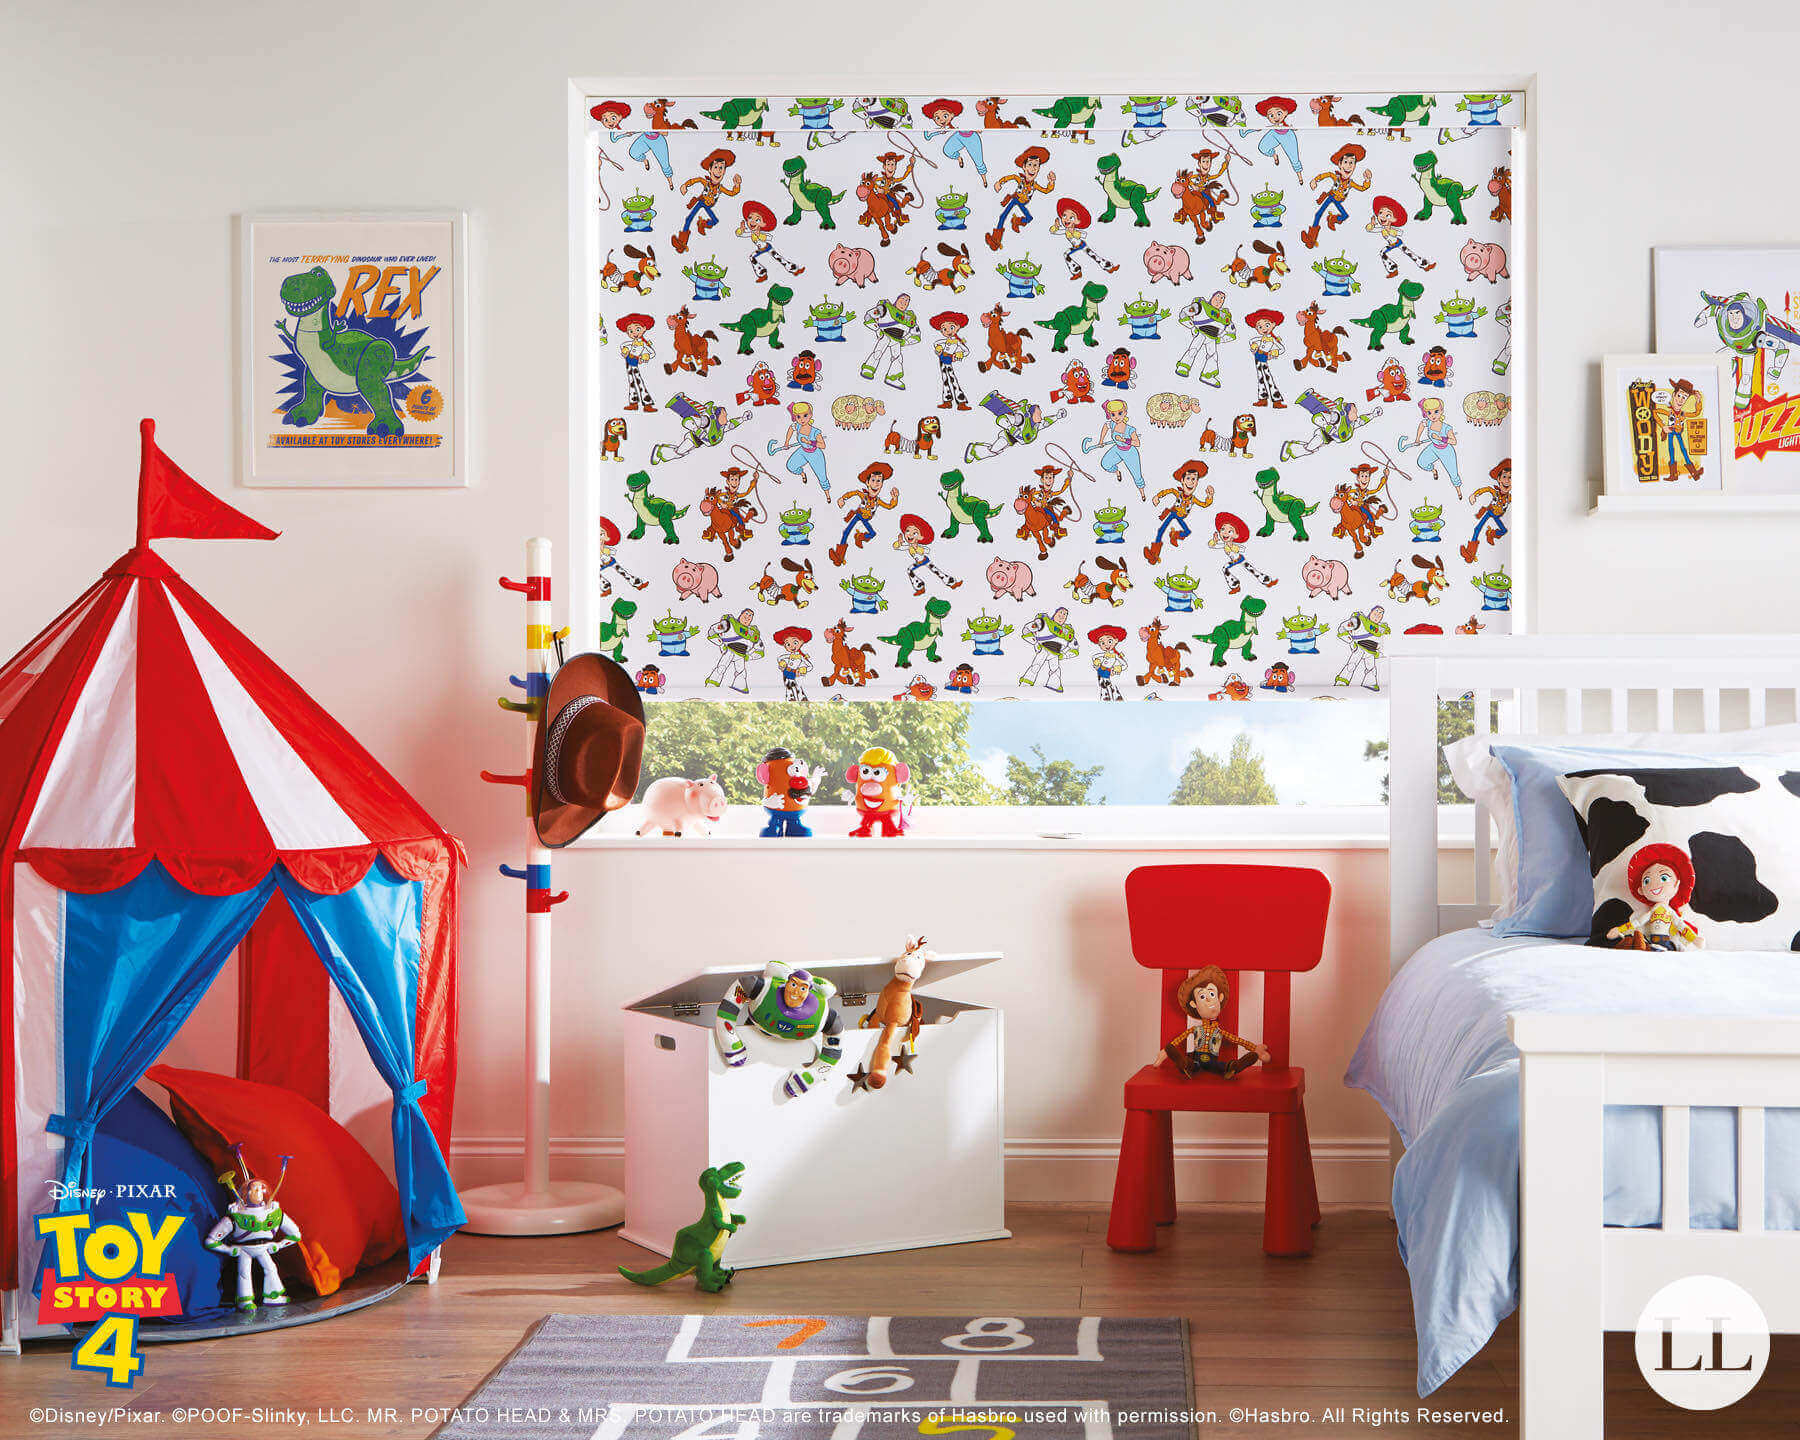 Toy Story 4 Roller Blinds Runcorn Liverpool